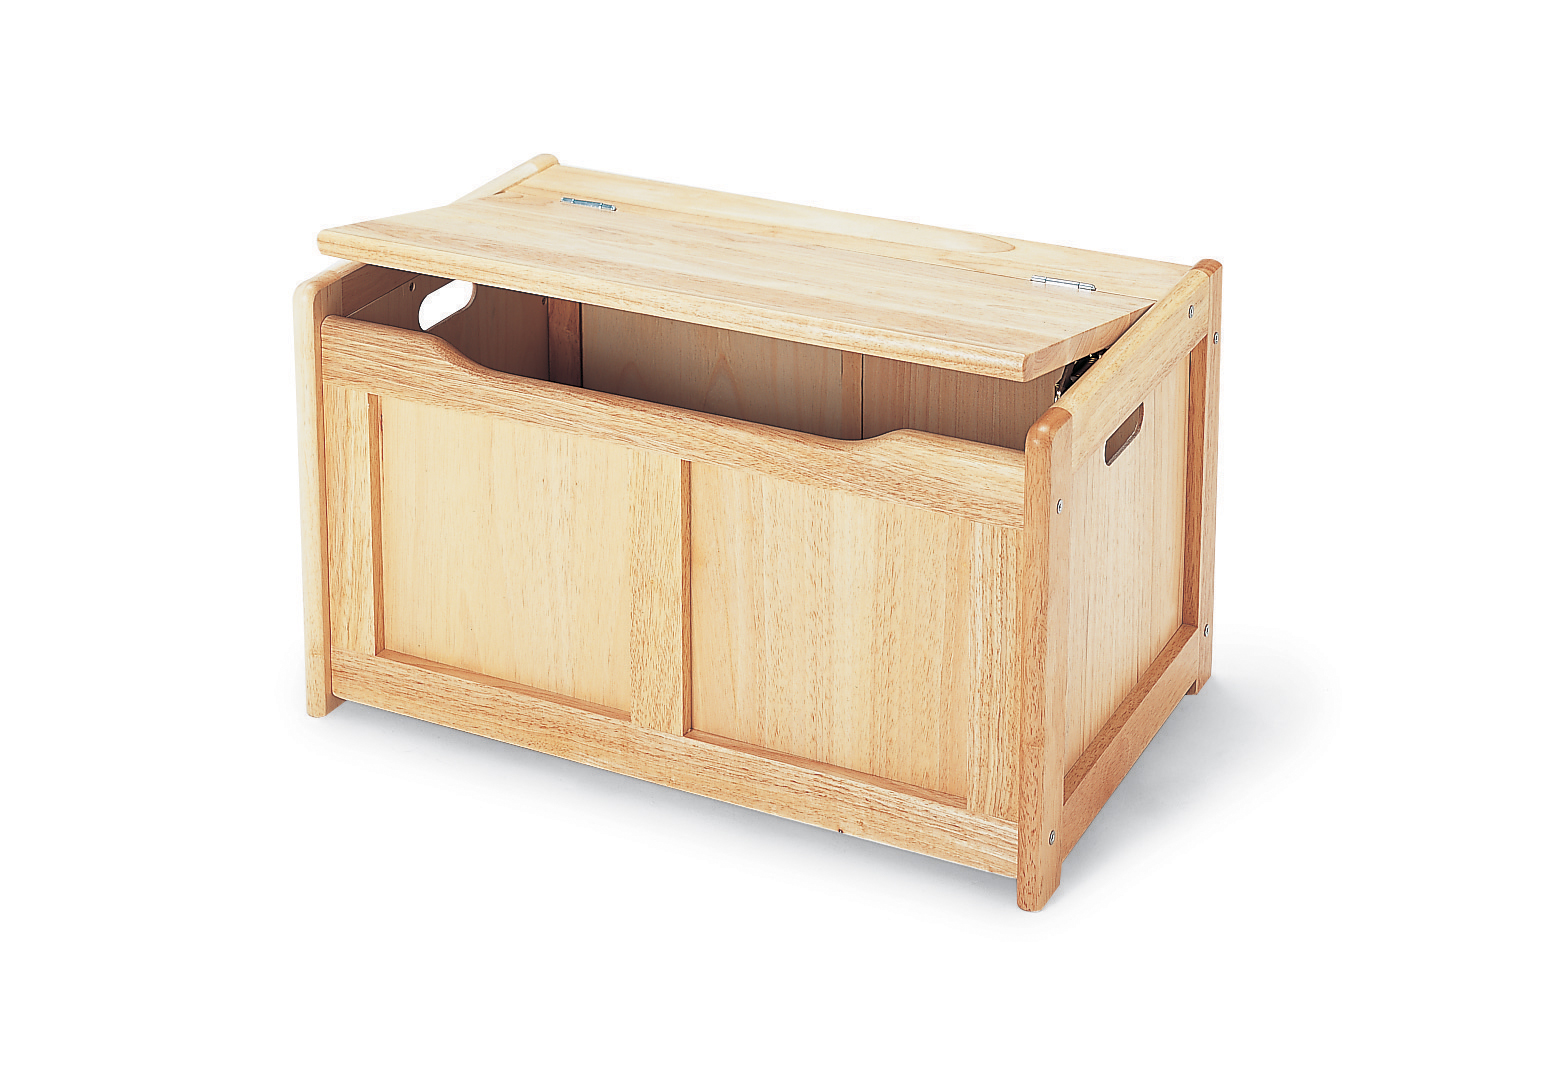 Natural Wooden Toy Chest, Kids Wooden Storage Chest